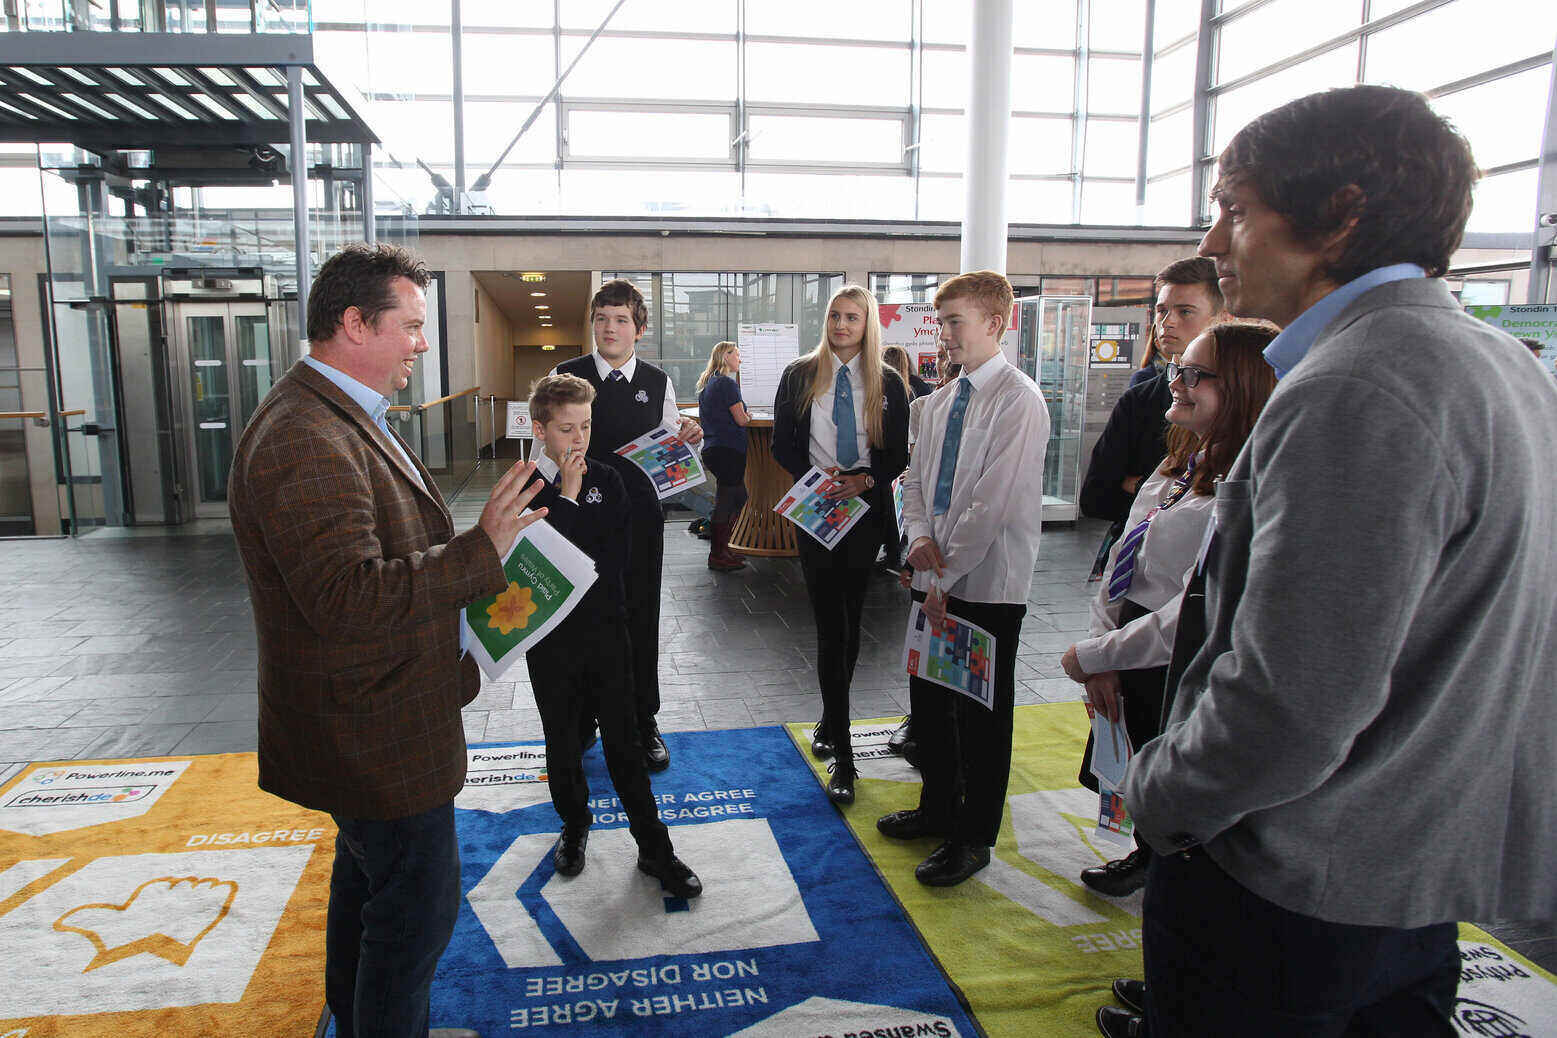 Matt Wall at Senedd with young people